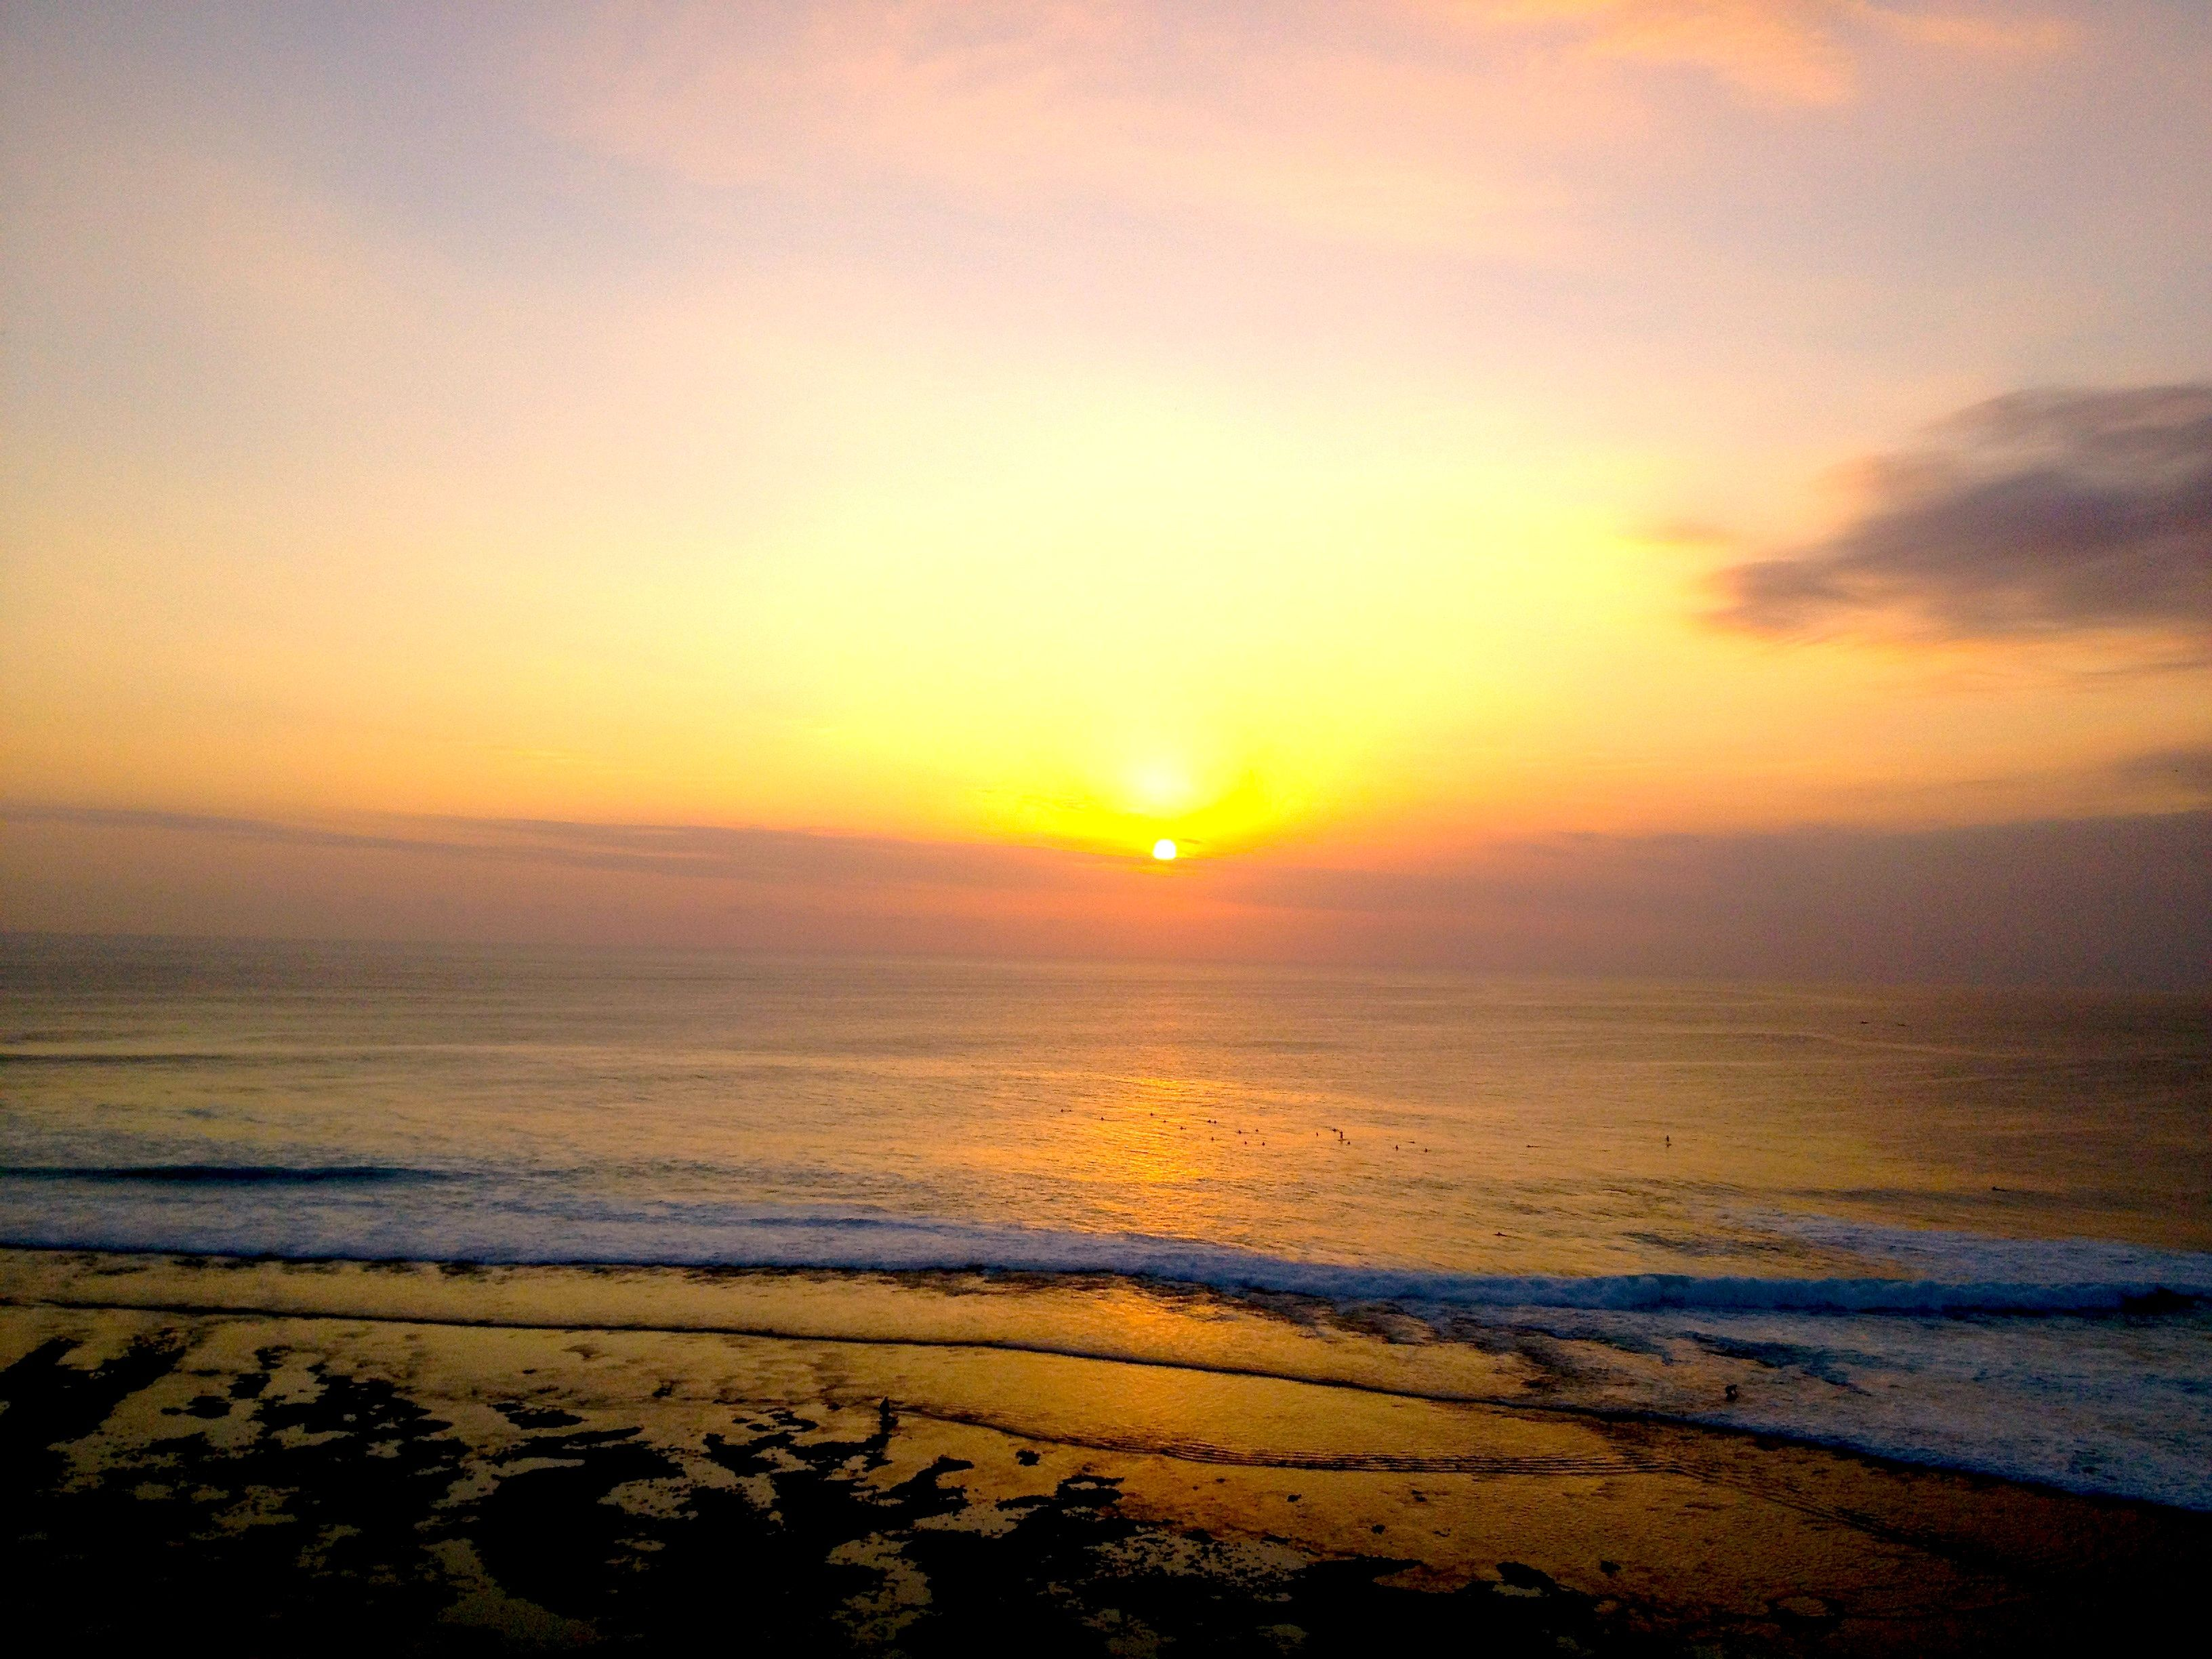 Surfers at Sunset in Uluwatu Bali - the ultimate paradise for catching waves